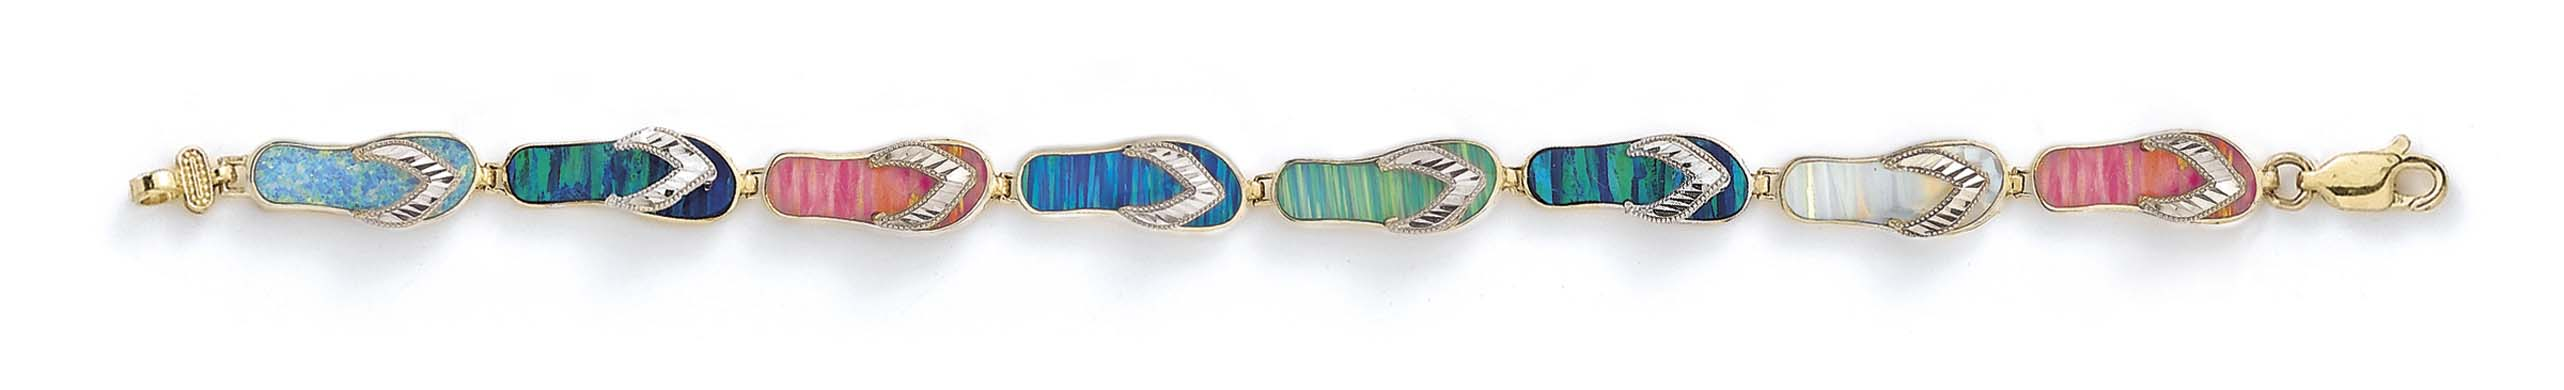 14k Yellow Gold Large Simulated Opal Sparkle-Cut Flip-Flop Bracelet 7.25 Inch by